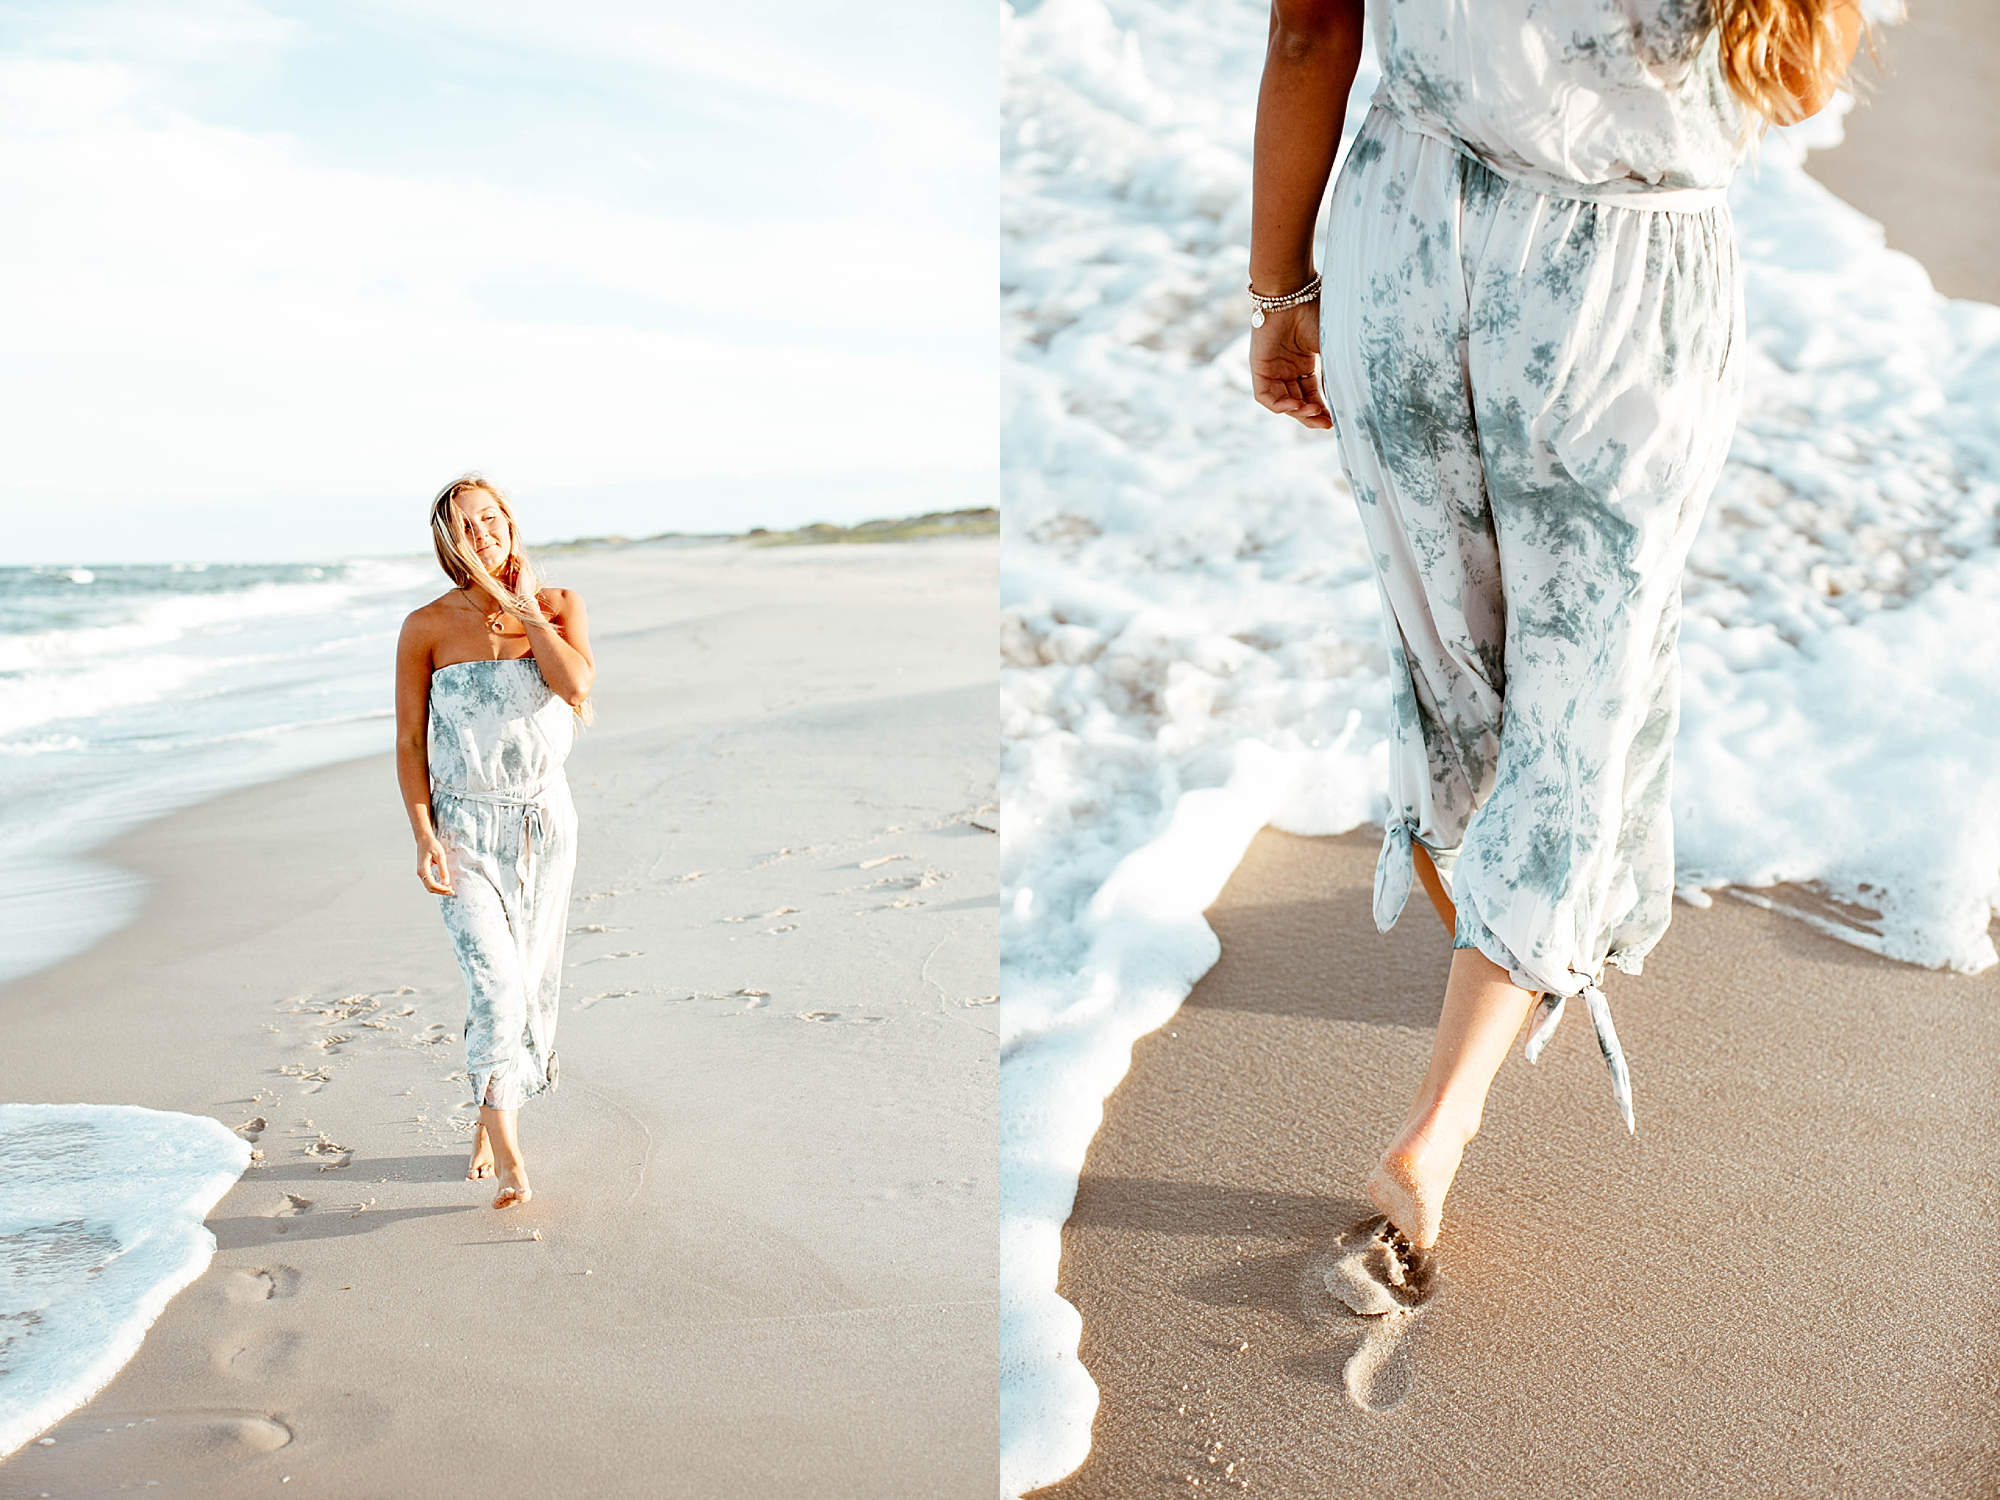 Natural and Bright Seaside Park New Jersey Boho Lifestlyle Beach Portrait Photography by Kelee Bovelle_0012.jpg